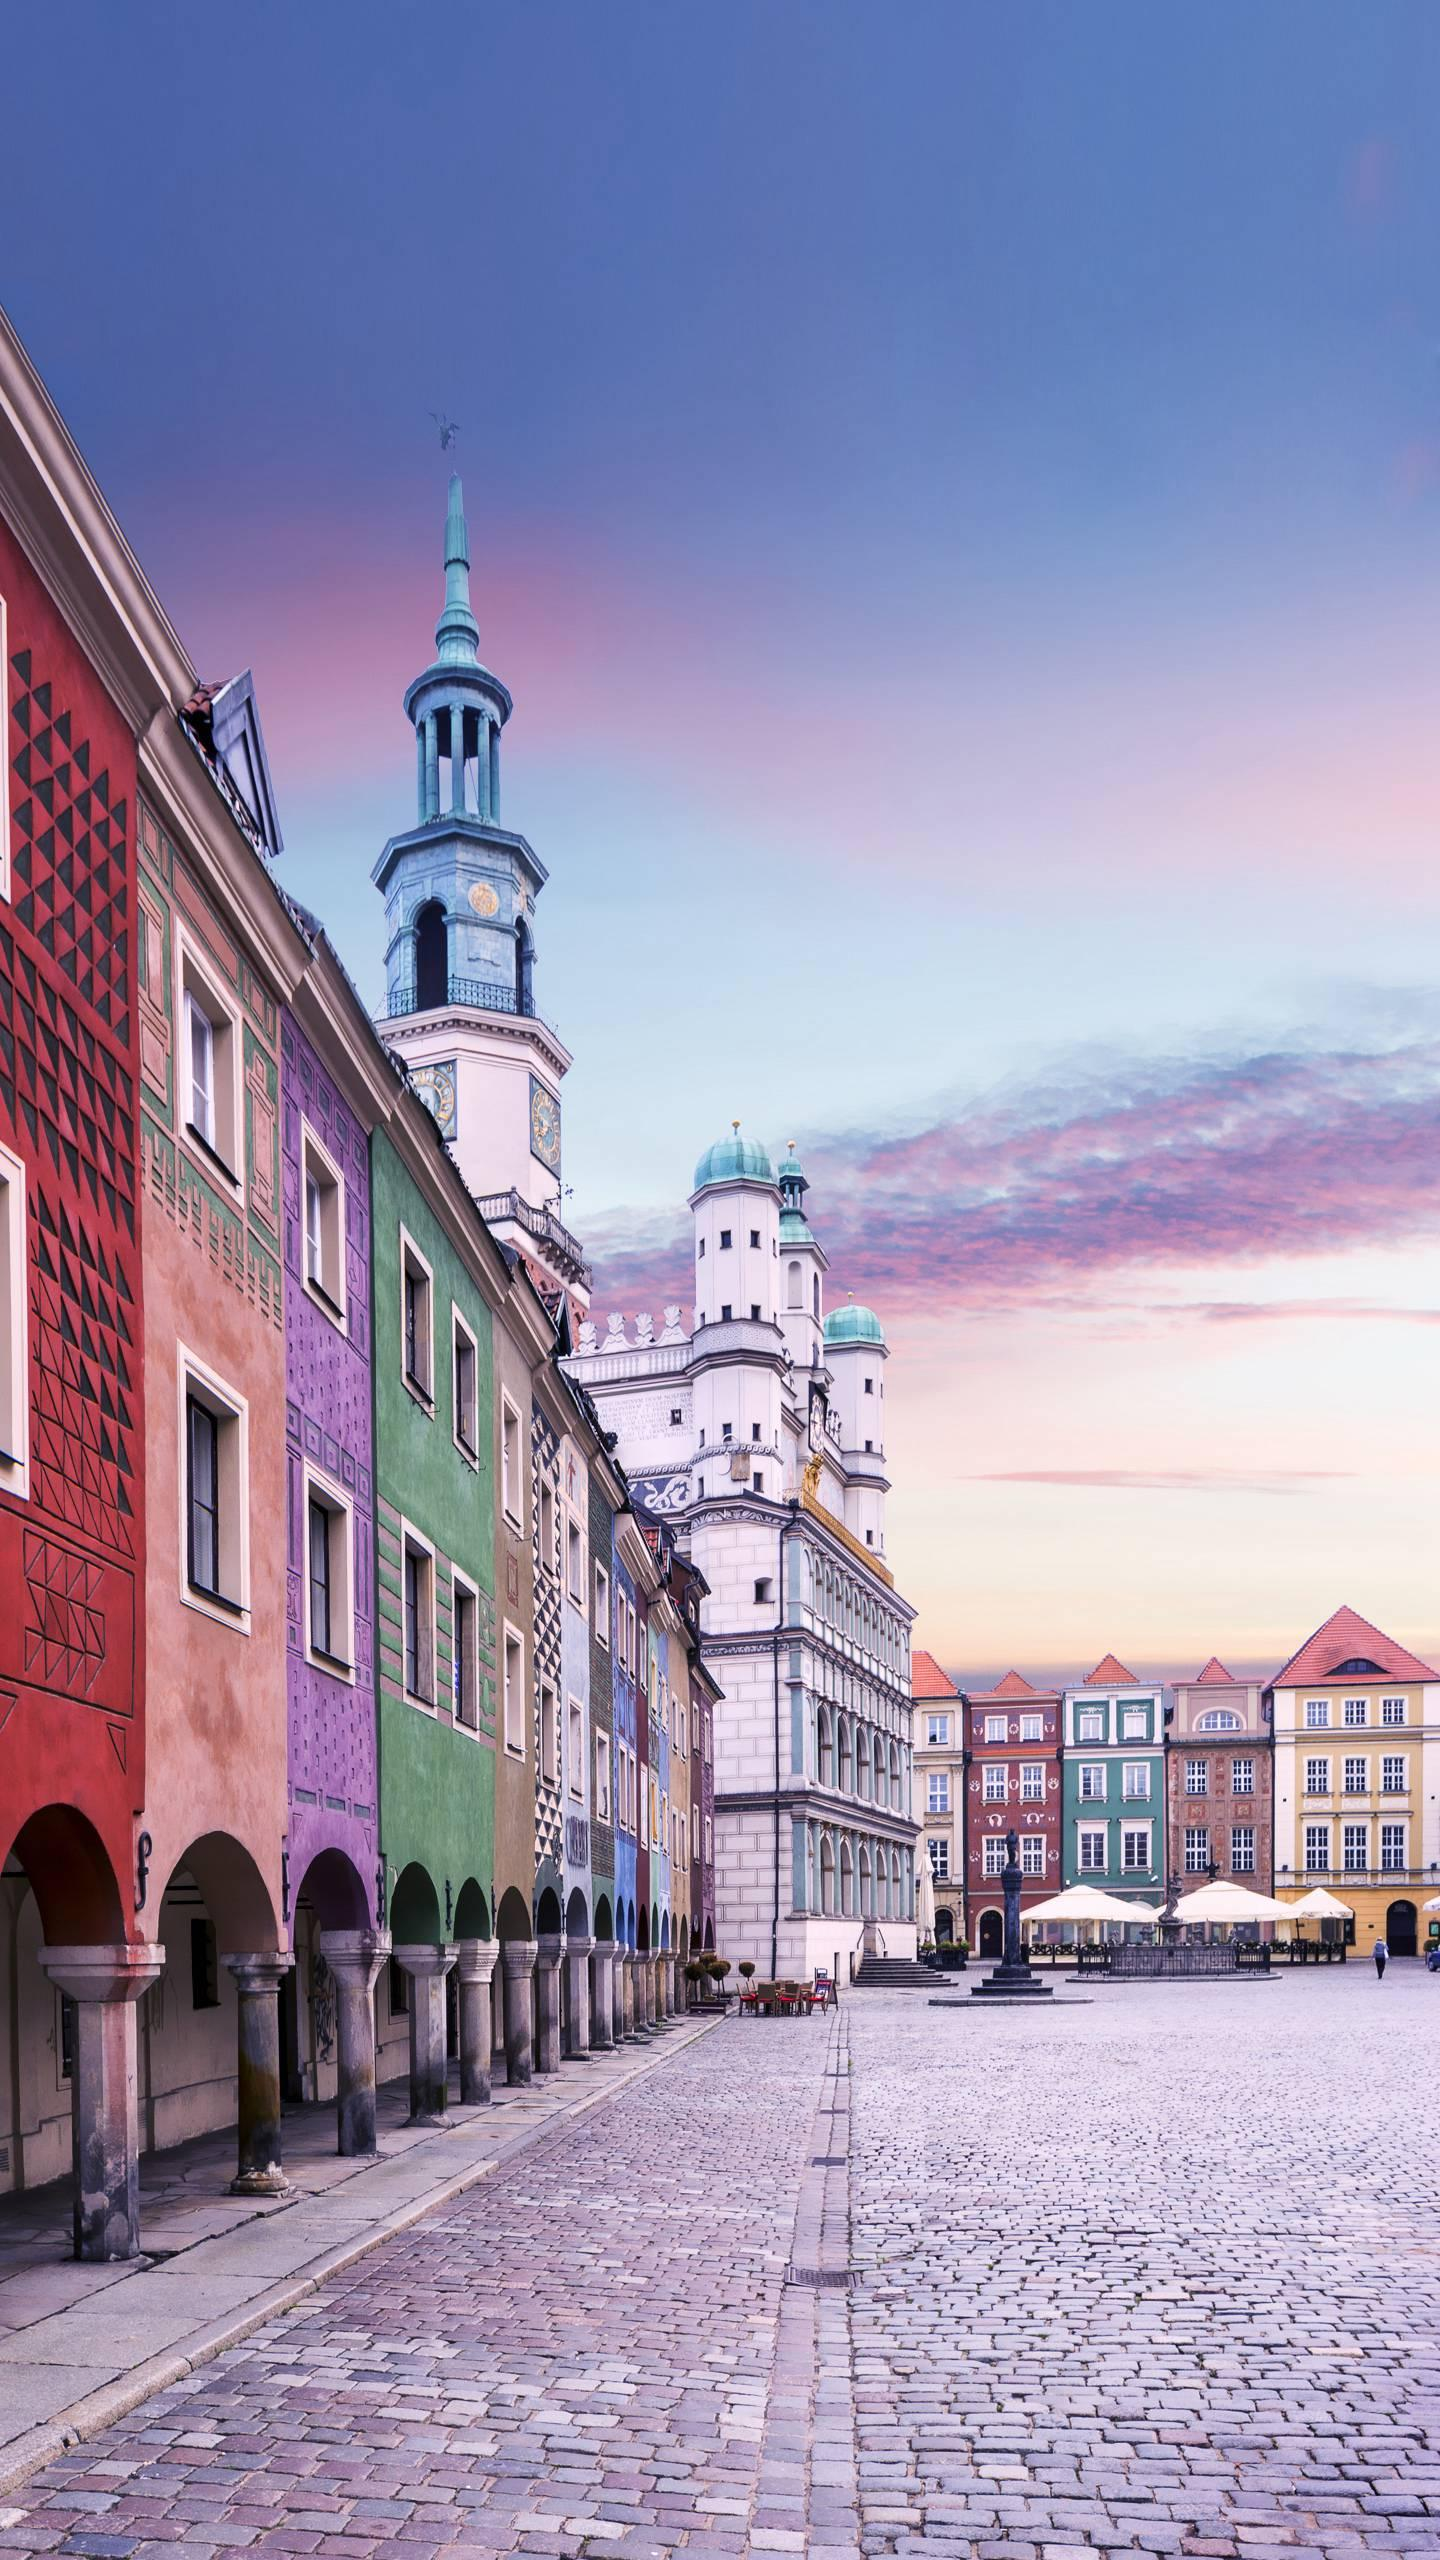 Poland - Poznan. One of the oldest cities in Poland, originally built in the ninth century, and later the capital of Poland.